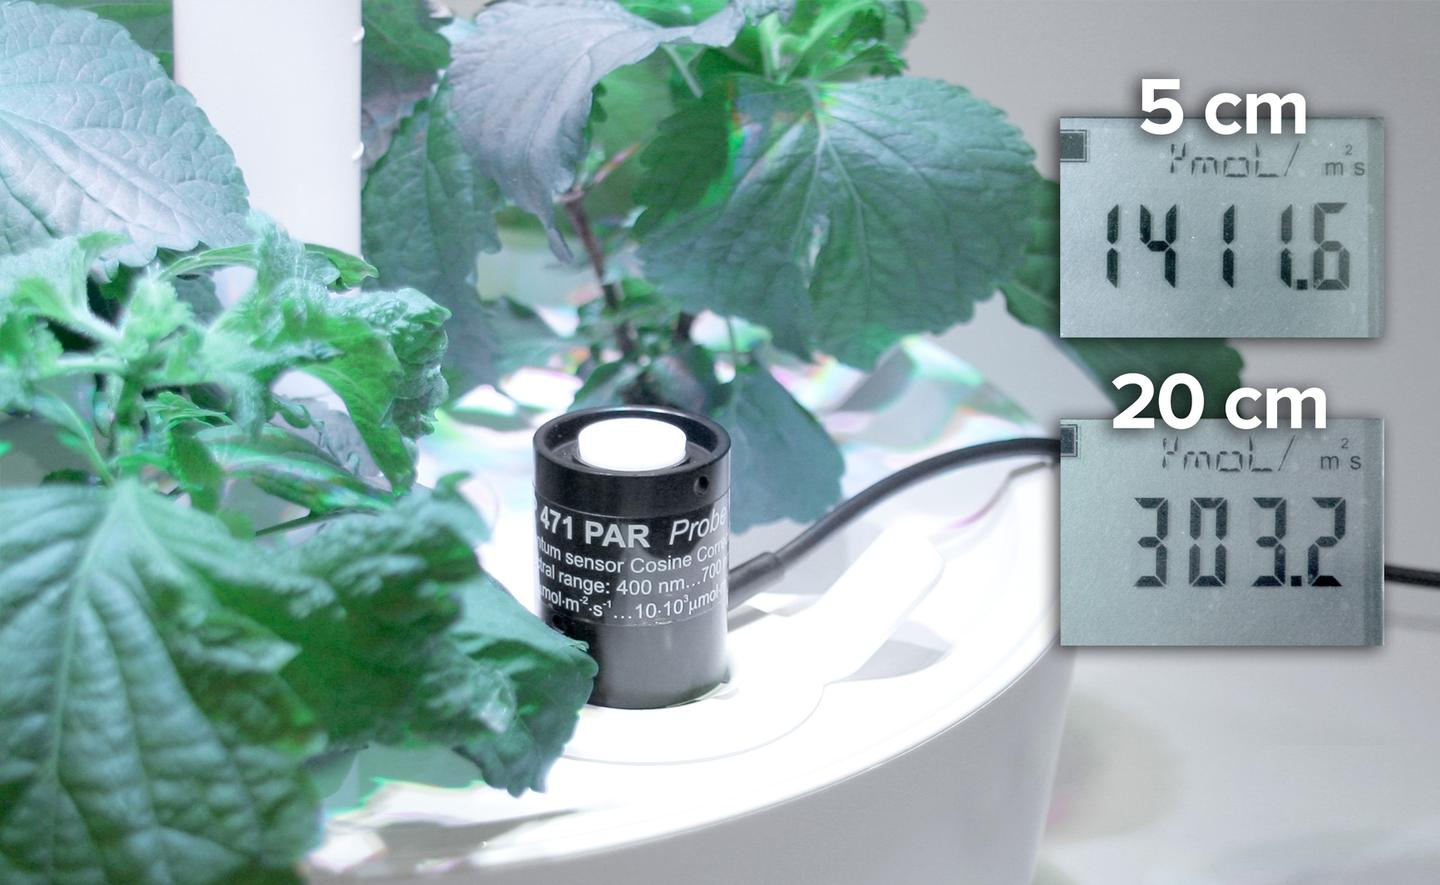 While the device can automatically adjust water and light according to the plant's growth, it allows the user to manipulate these settings to shape the final product